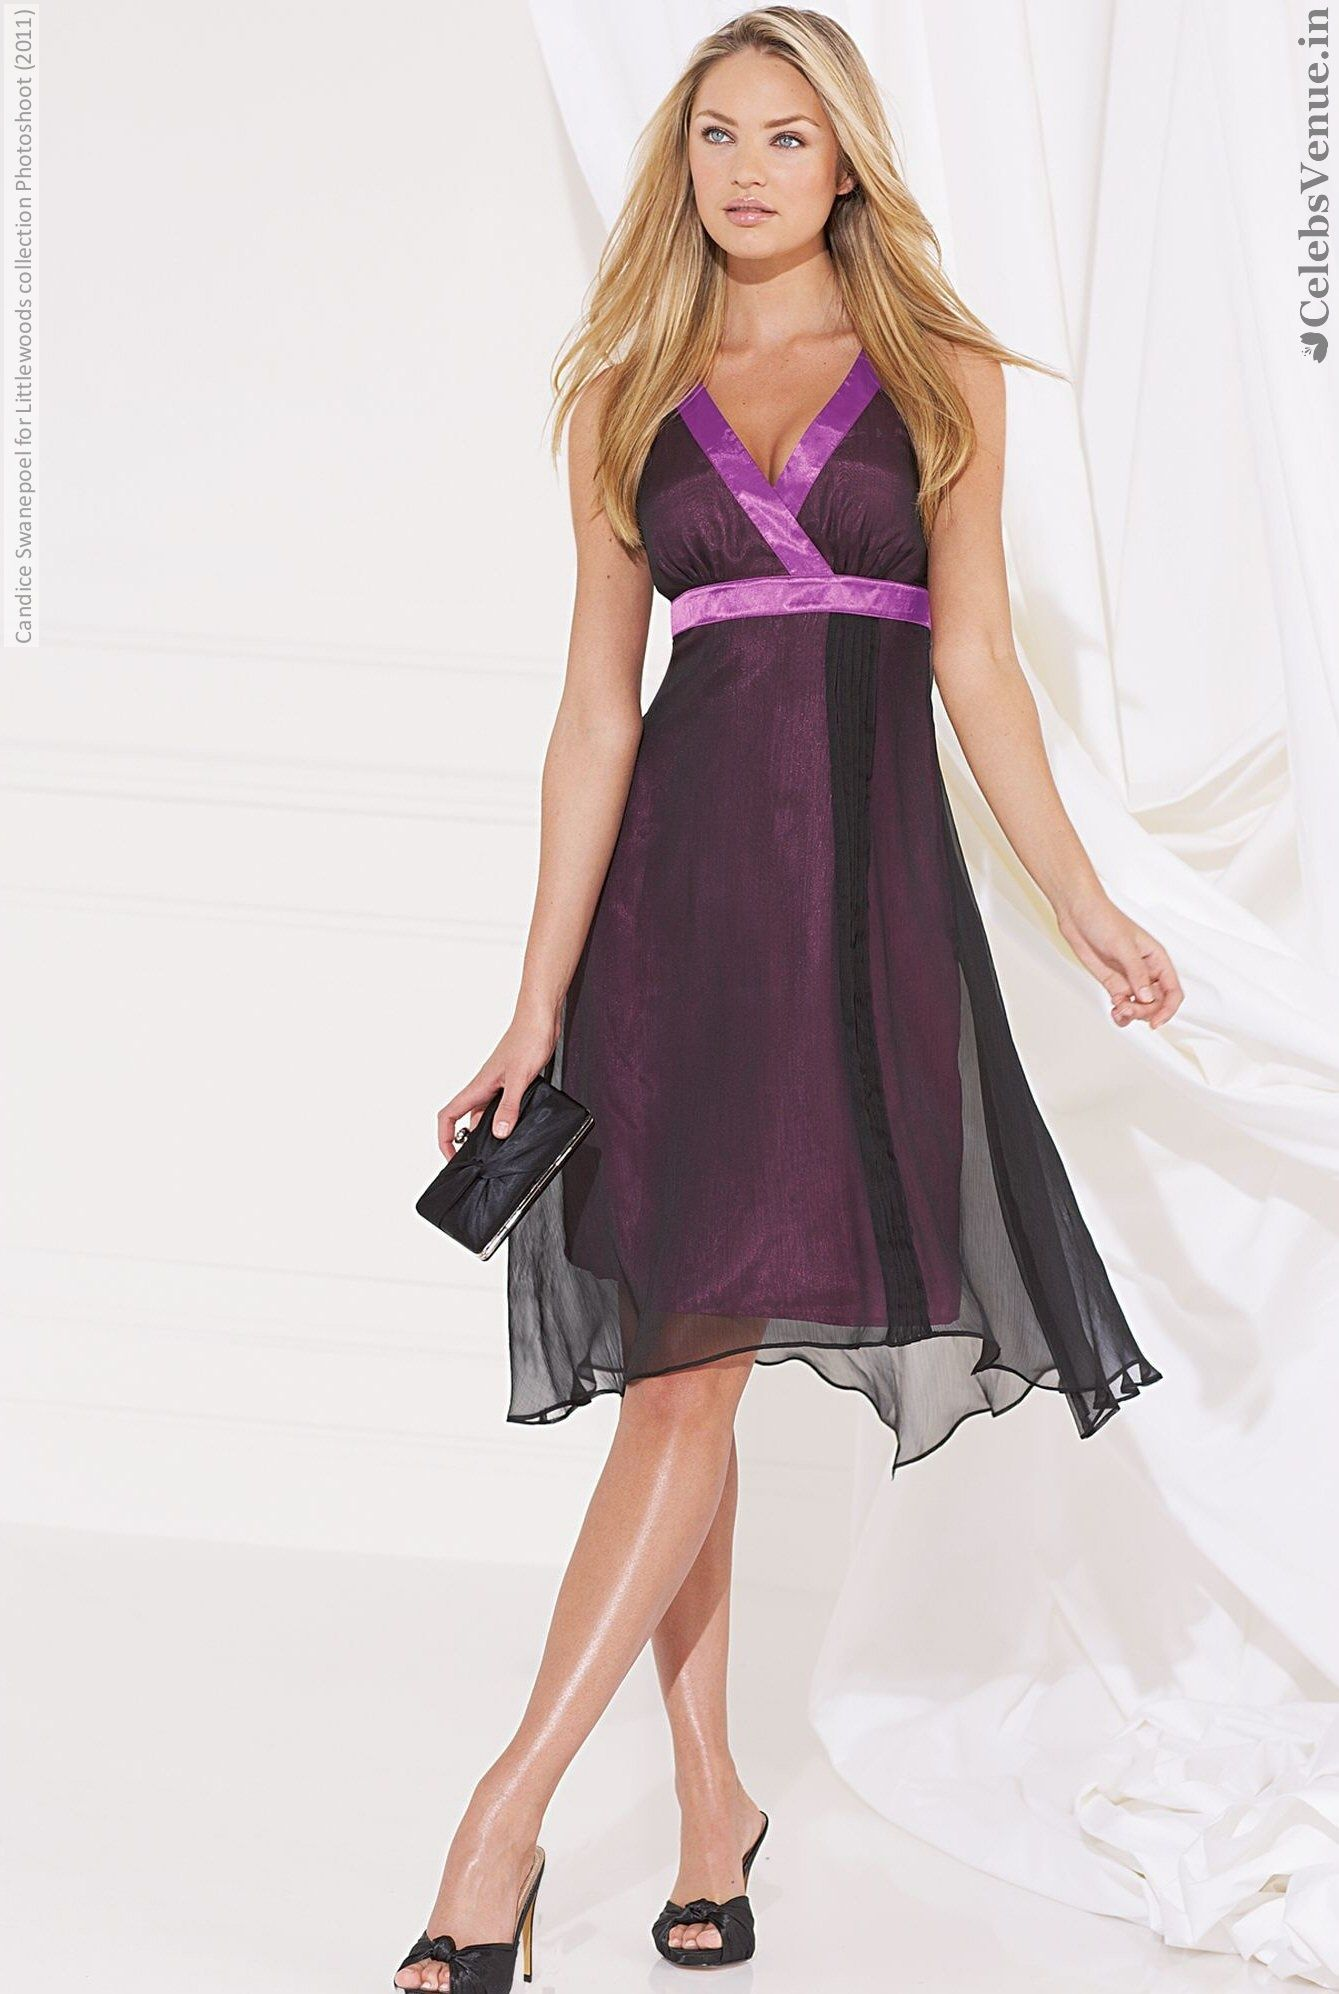 Littlewoods dresses for weddings  Candice Swanepoel for Littlewoods collection Photoshoot